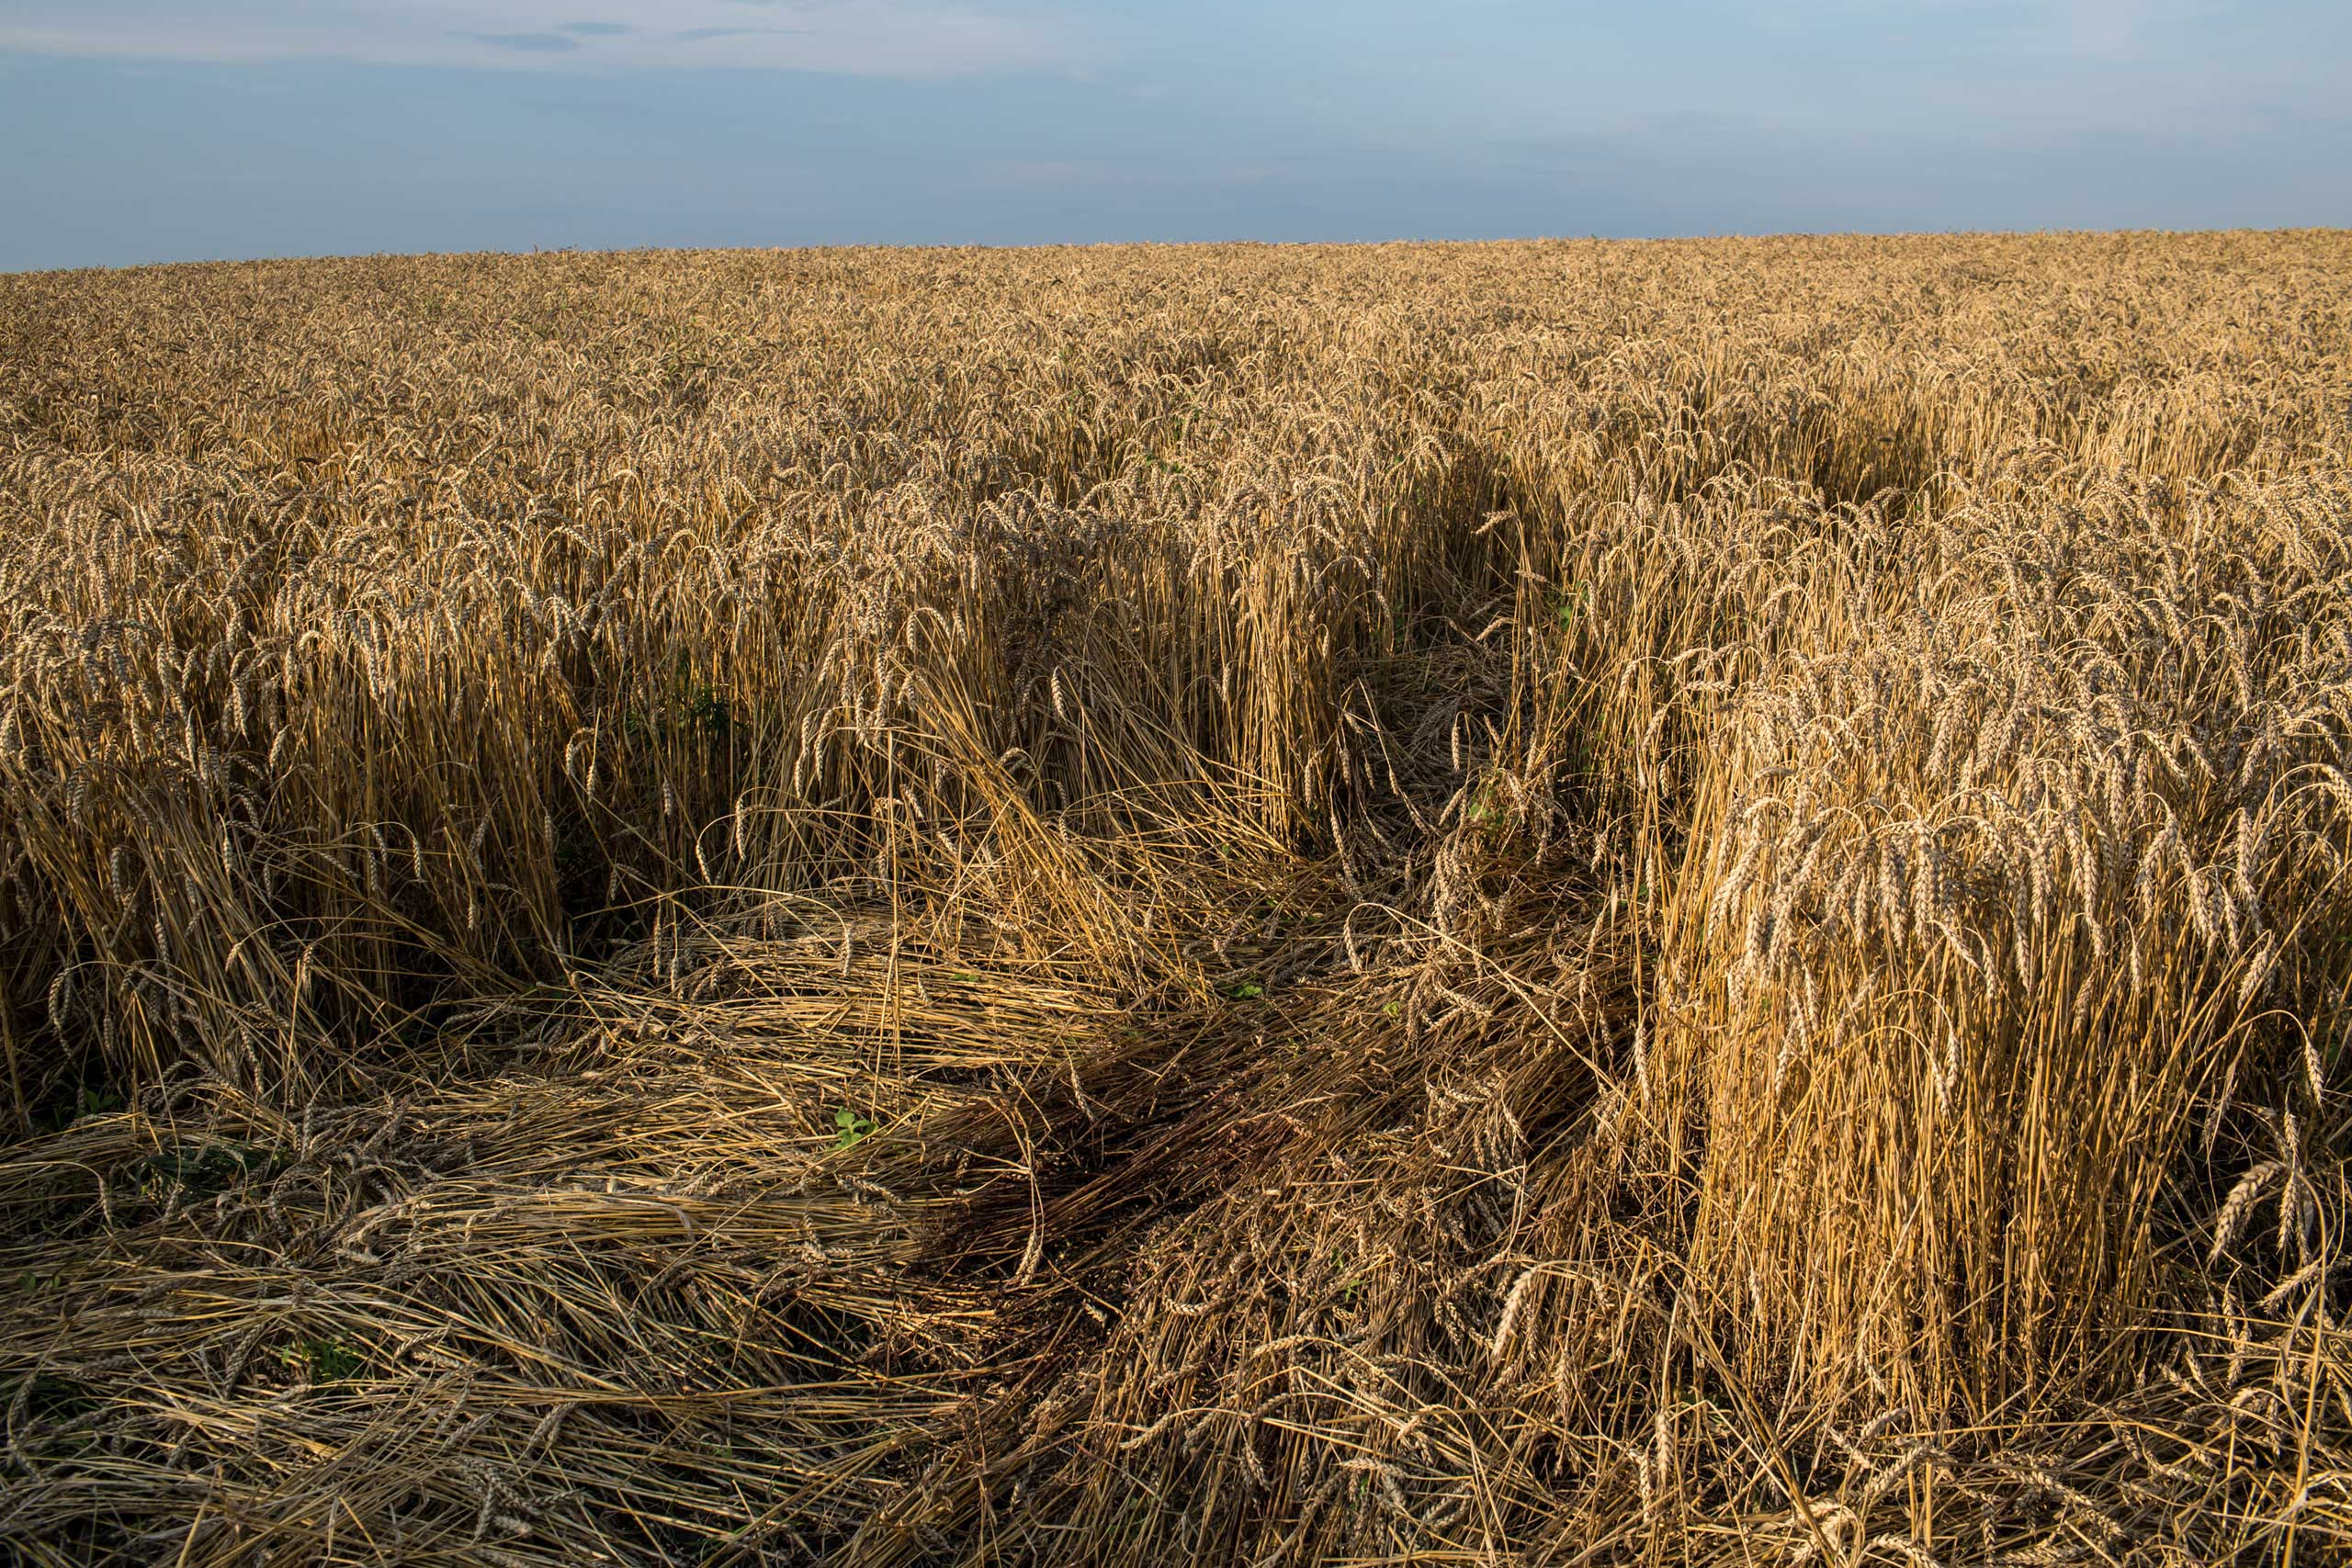 BBC Radio 4: Interview with Brendan Hoffman Blood stains the spot in a wheat field where the body of a passenger on Malaysia Airlines flight MH 17 landed and was later removed on July 19, 2014 in Grabovo, Ukraine.